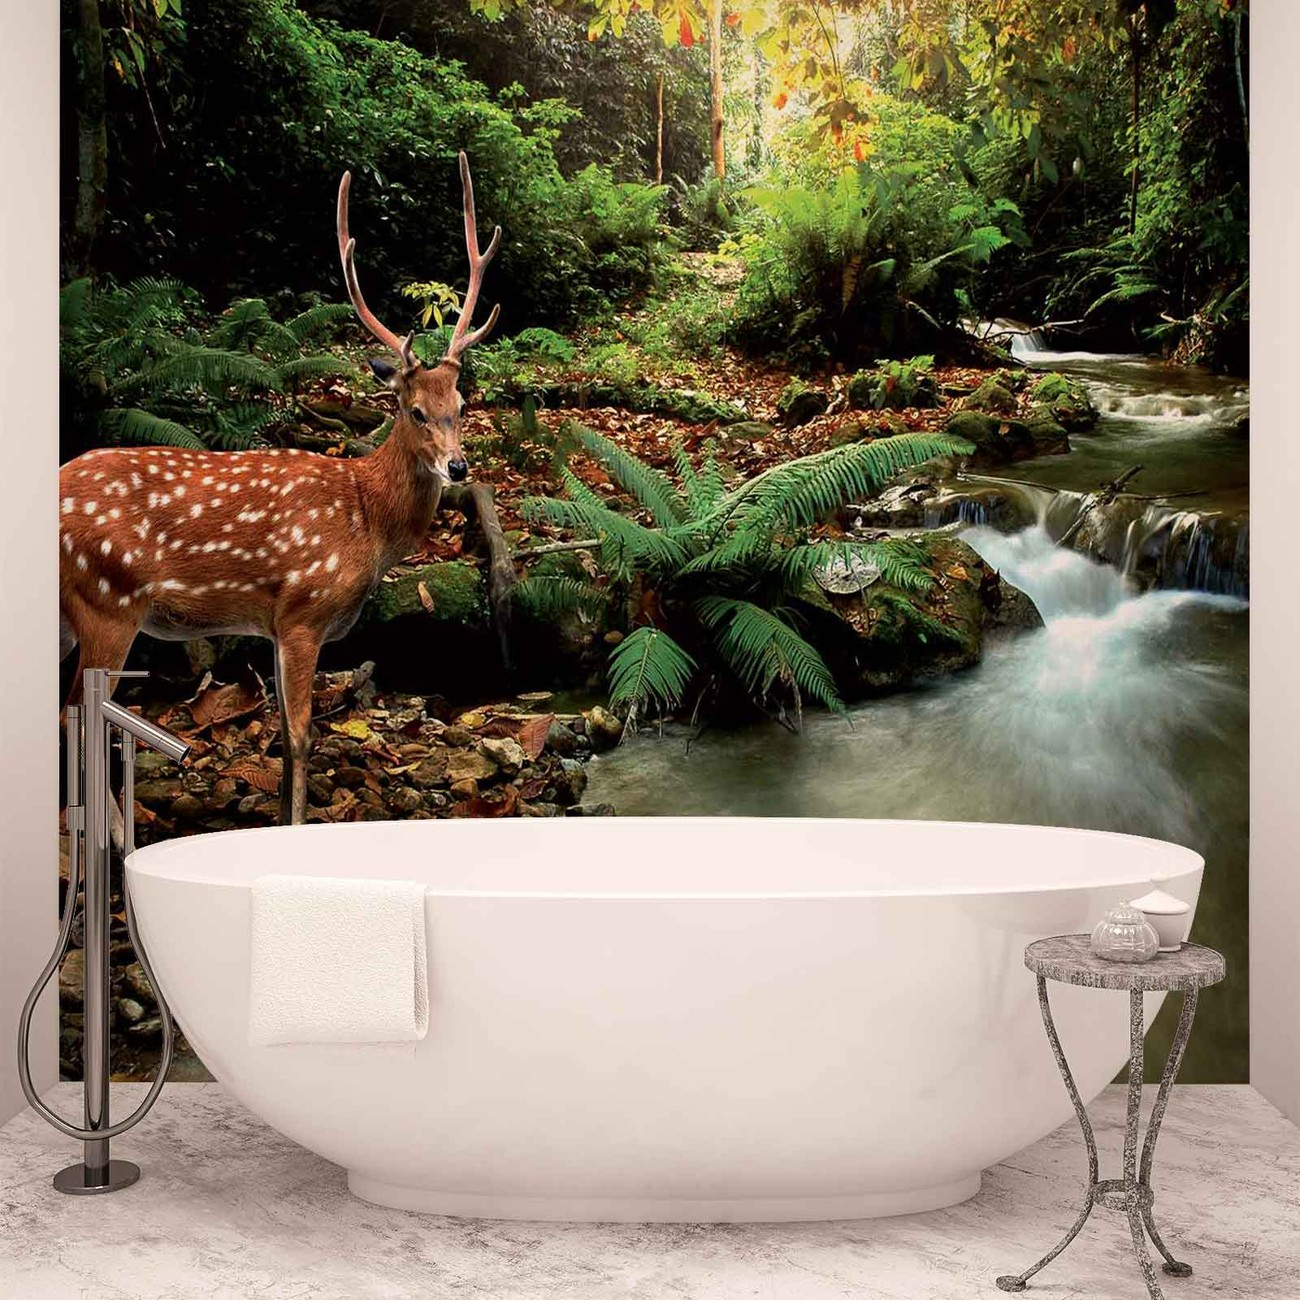 Deer in forest wall paper mural buy at europosters for Deer wall mural